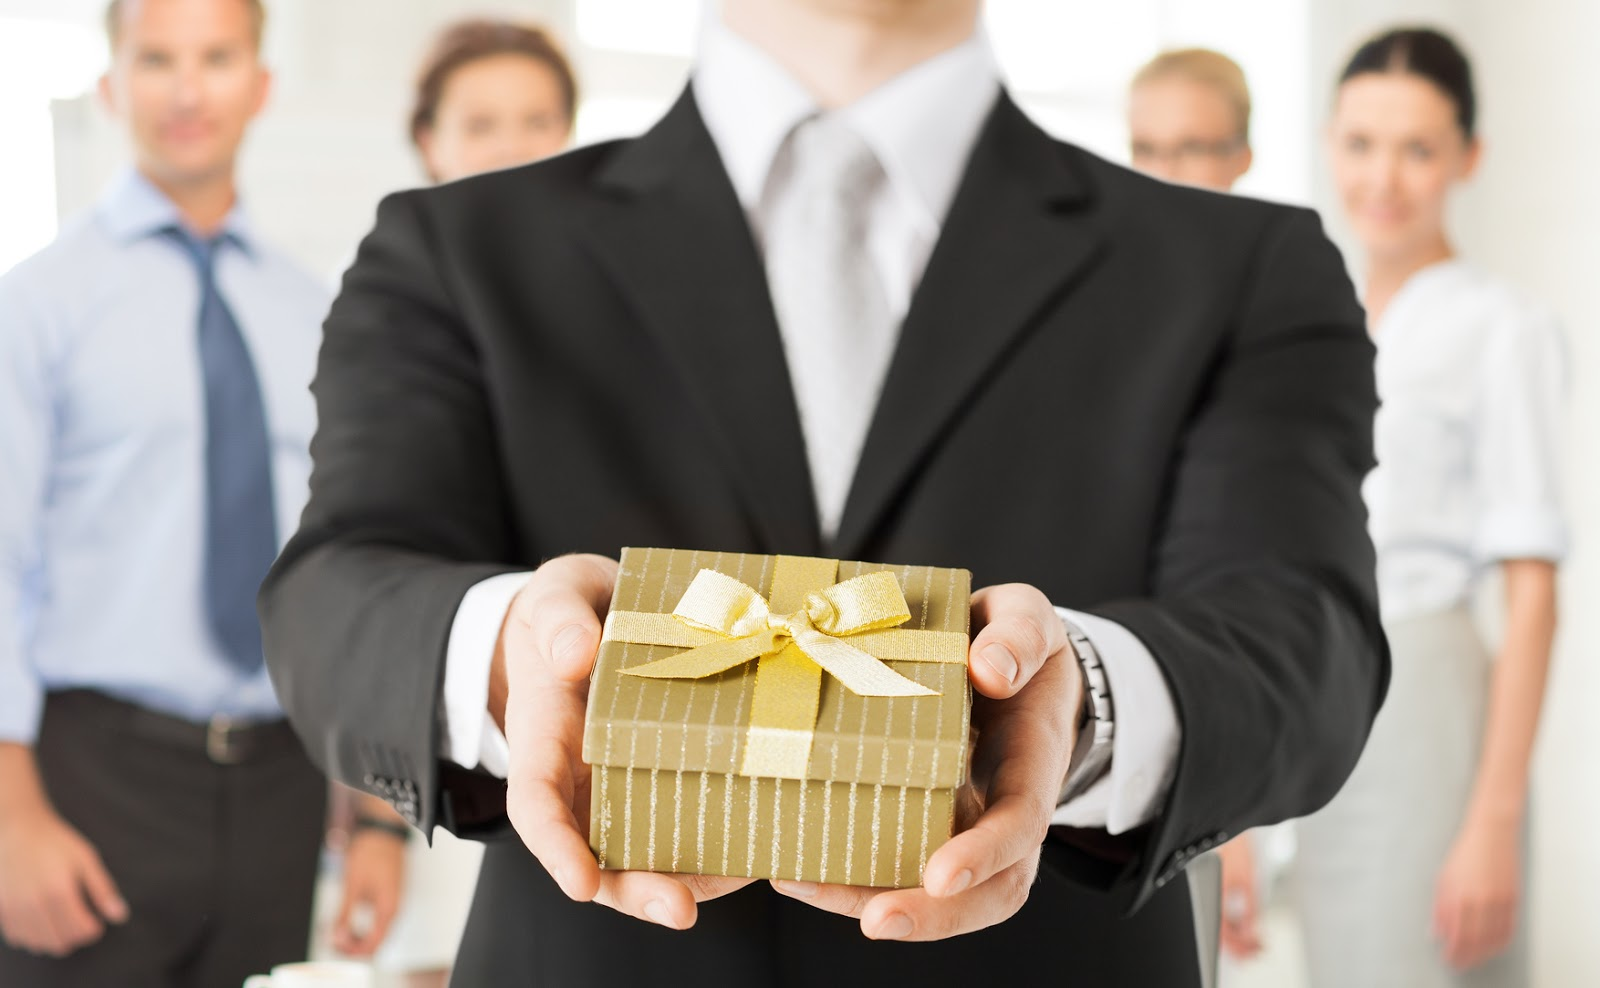 When Is The Right Time To Gift Your Colleague?